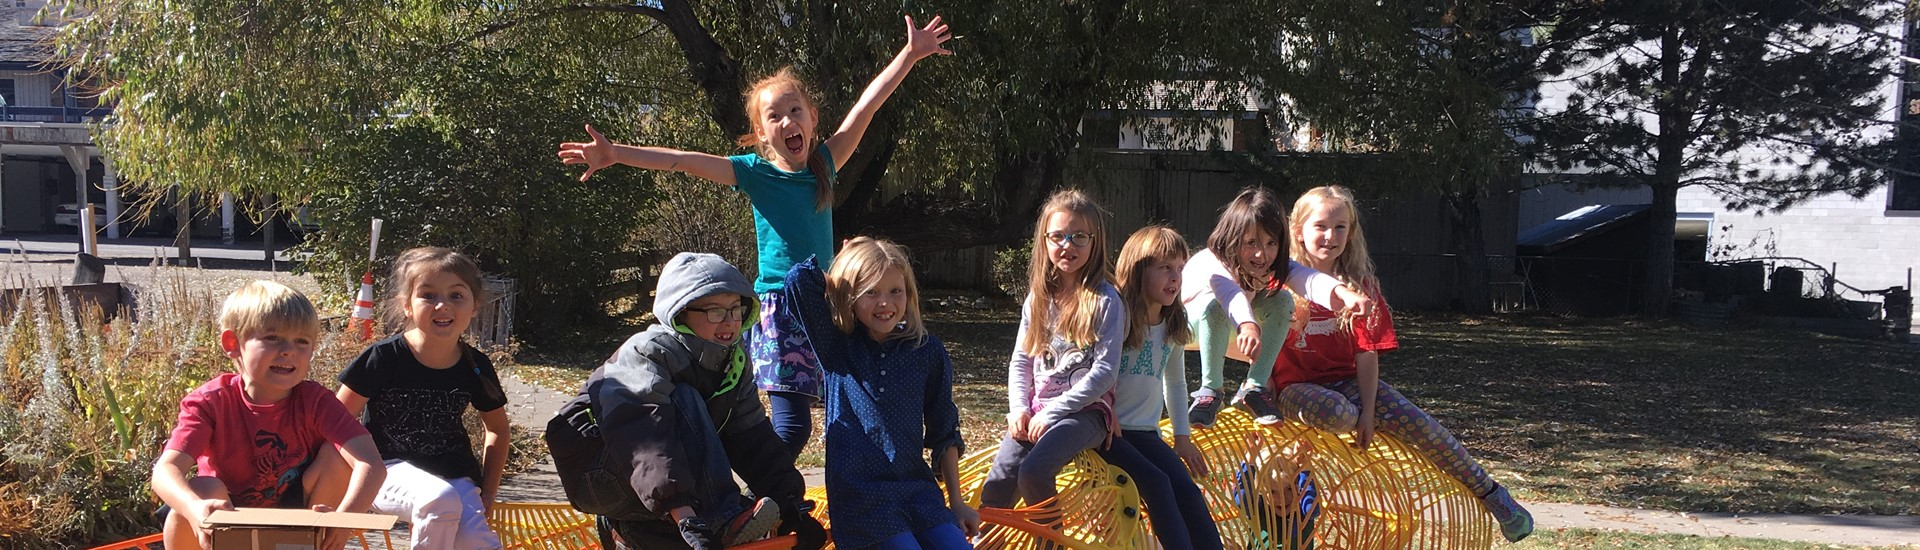 Students on the Alta Elementary School playground